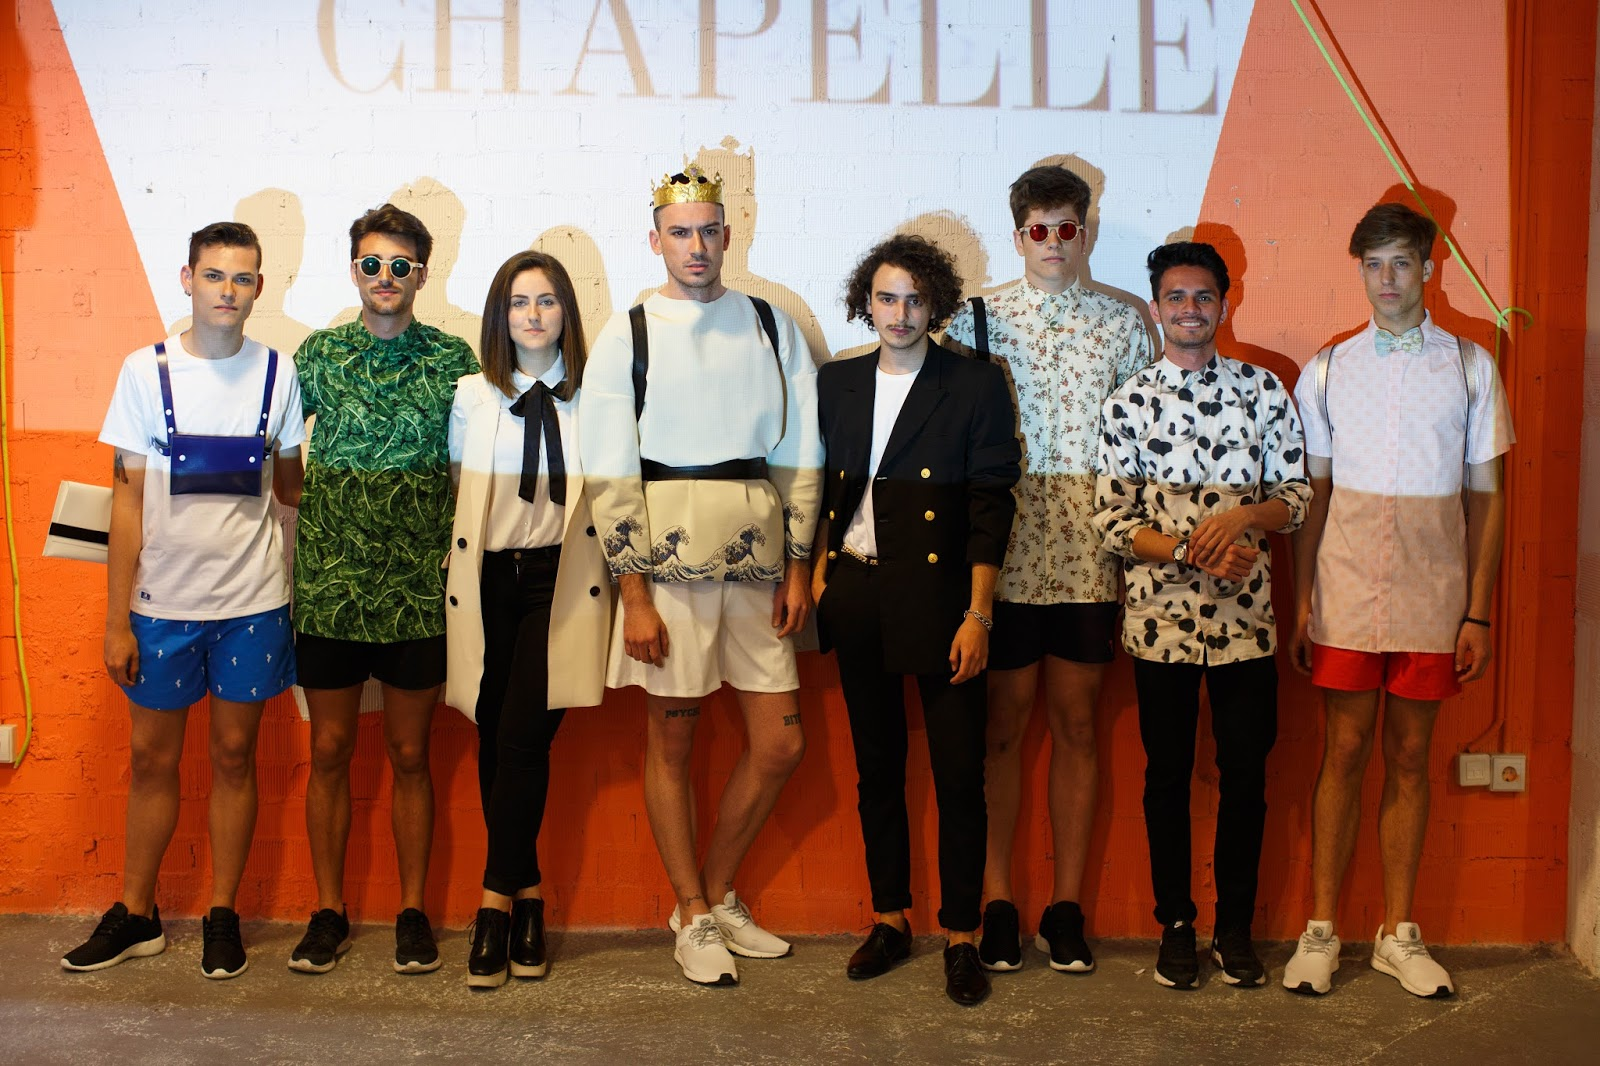 VLC valencia SOLO MEN mercado tapineria chapelle magazine somethingfashion, spain spanish fashion blogger style moda desfile catwalk, event presentation bloggers collaboration